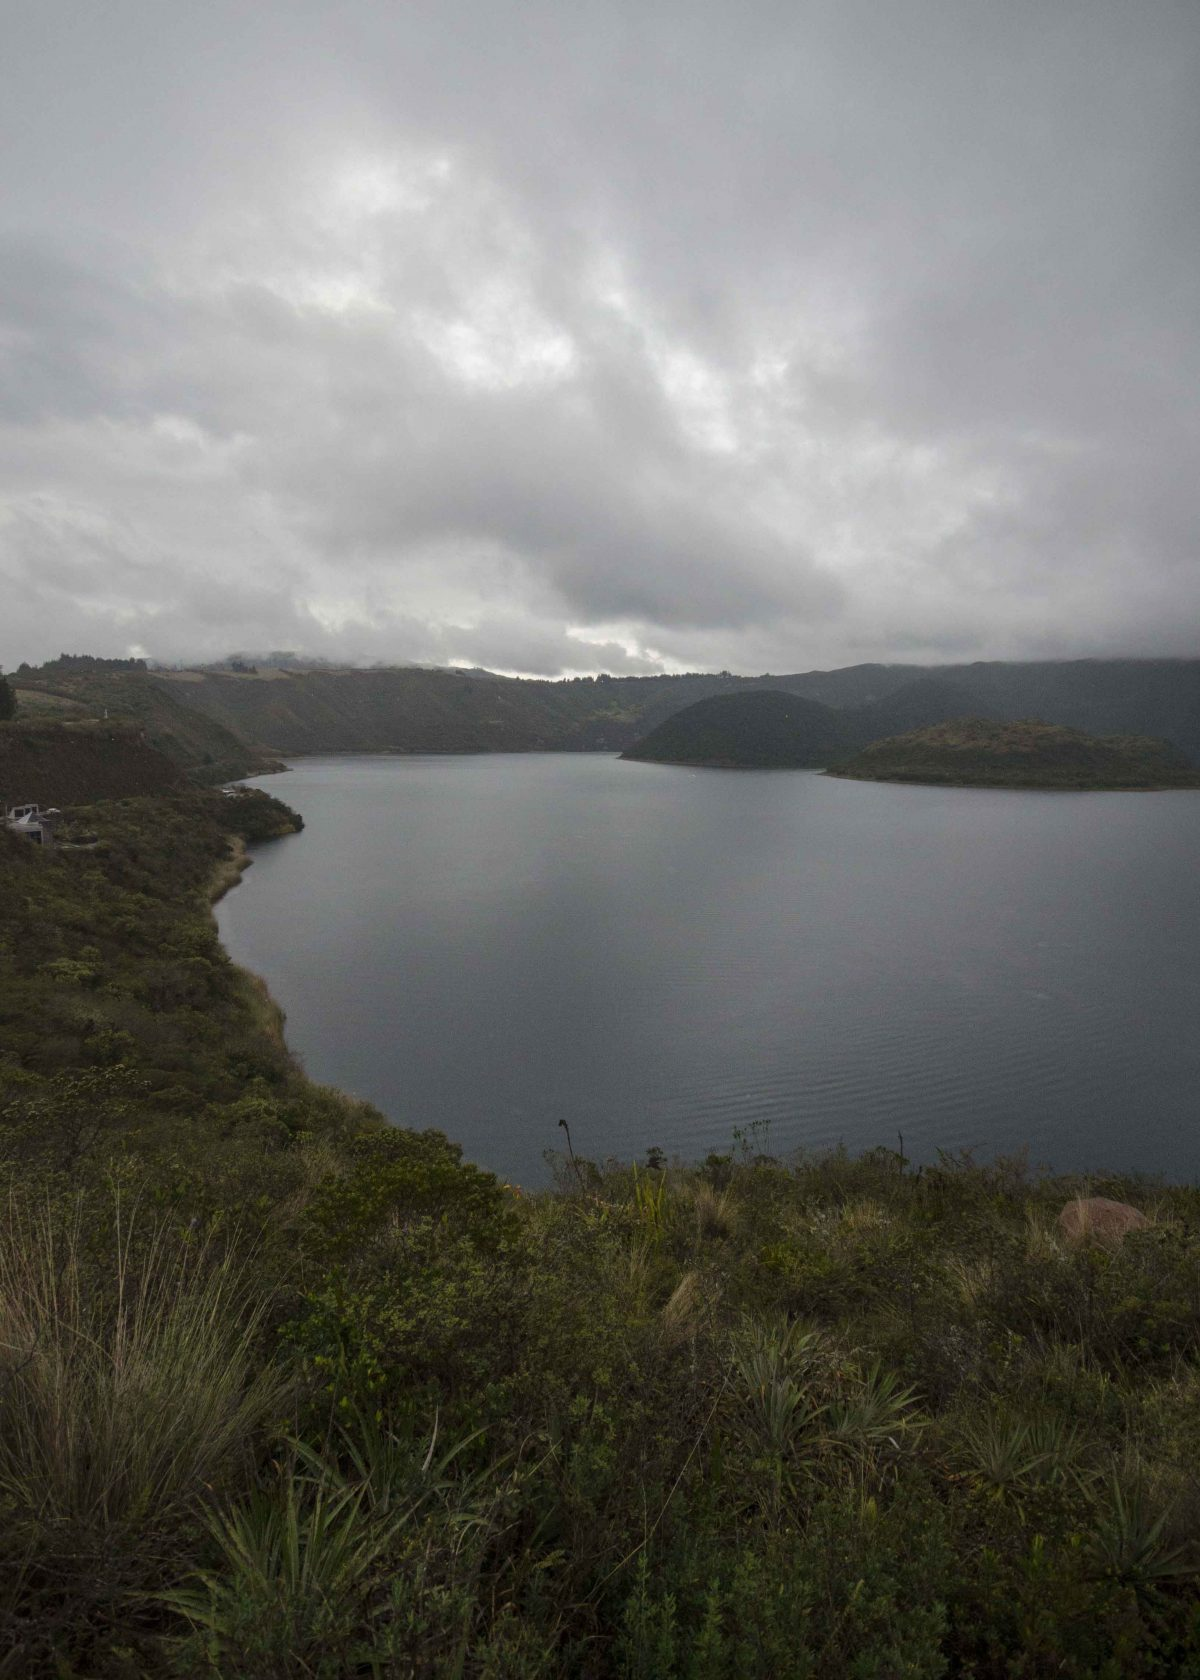 Rain is an everyday threat in the Andes, Laguna Cuicocha, Ecuador